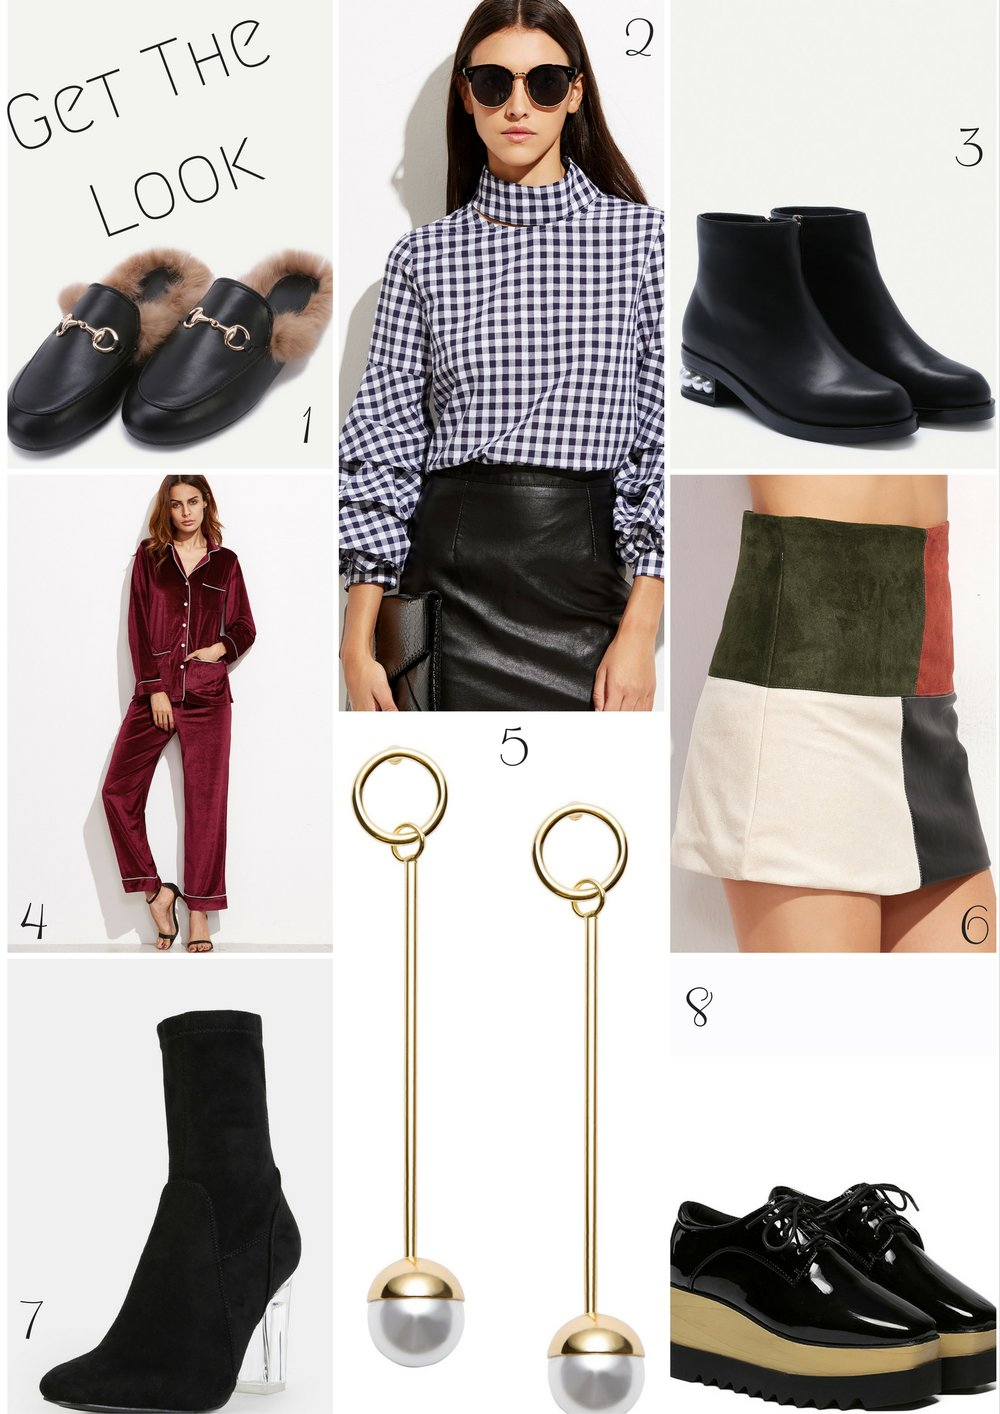 Use Offer Code:  DP40 for an additional 40% OFF featured items 1.  Black Faux Leather fur lined slippers    2.   Gingham Billow sleeve blouse   3.  Black Faux Leather Pearl Heel Ankle boots    4.  Burgundy velvet pajama suit   5.   Long Drop Pearl Earrings   6.   Contrast Patchwork Skirt   7.    Black High Shaft Clear Heel Booties   8.  Black Patent LaceUp Flatform Oxfords